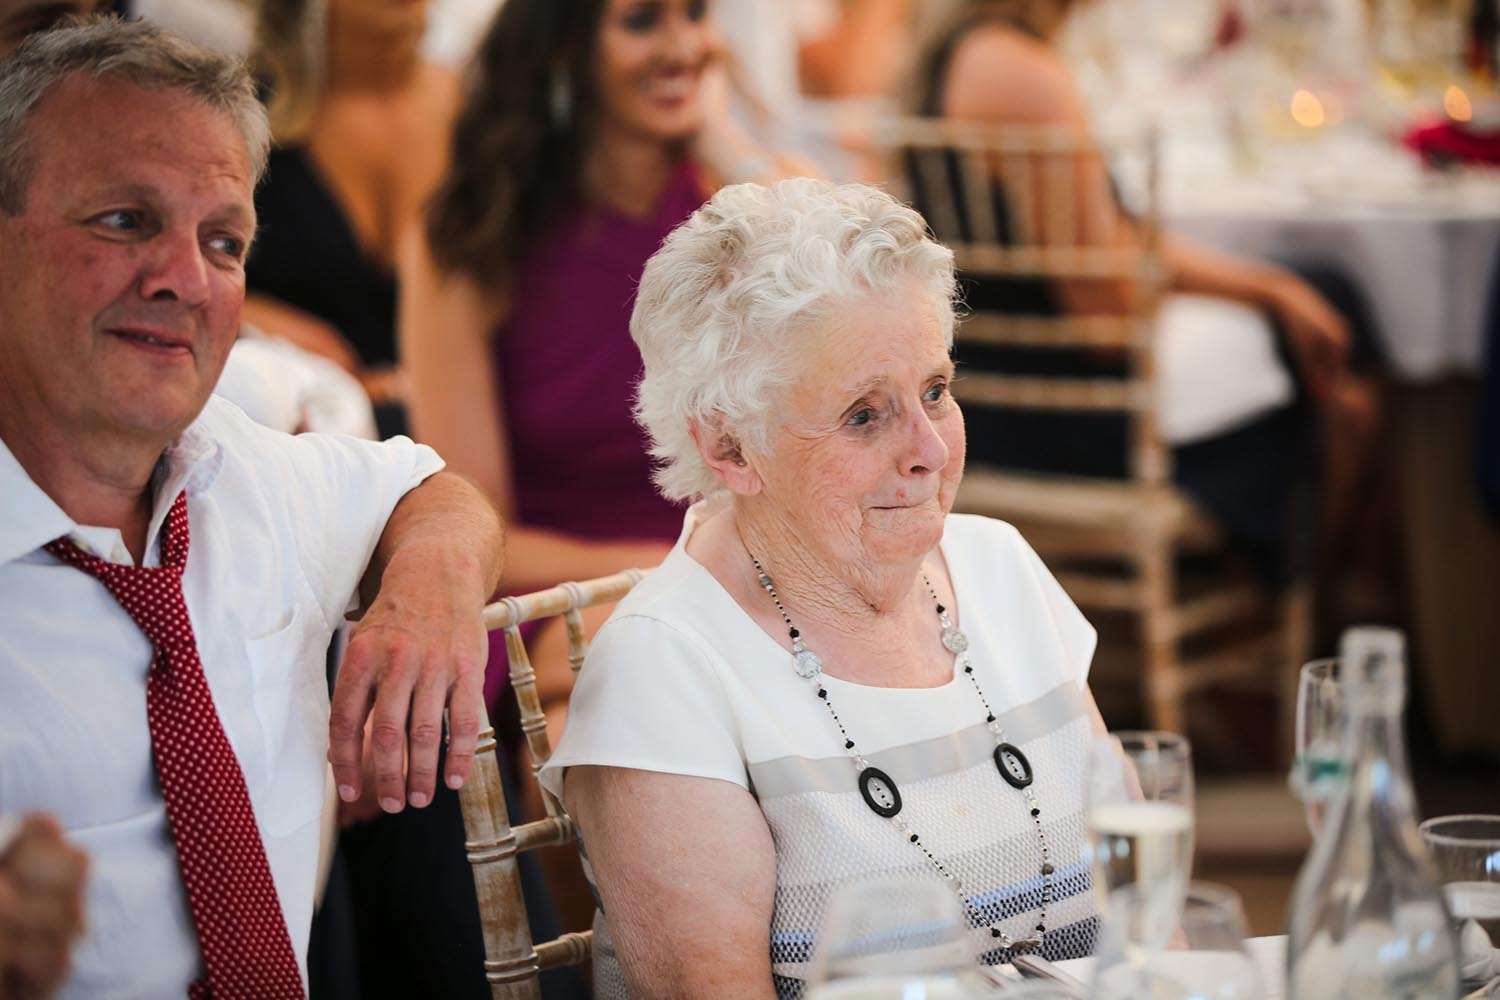 Elderly guests enjoying wedding speeches